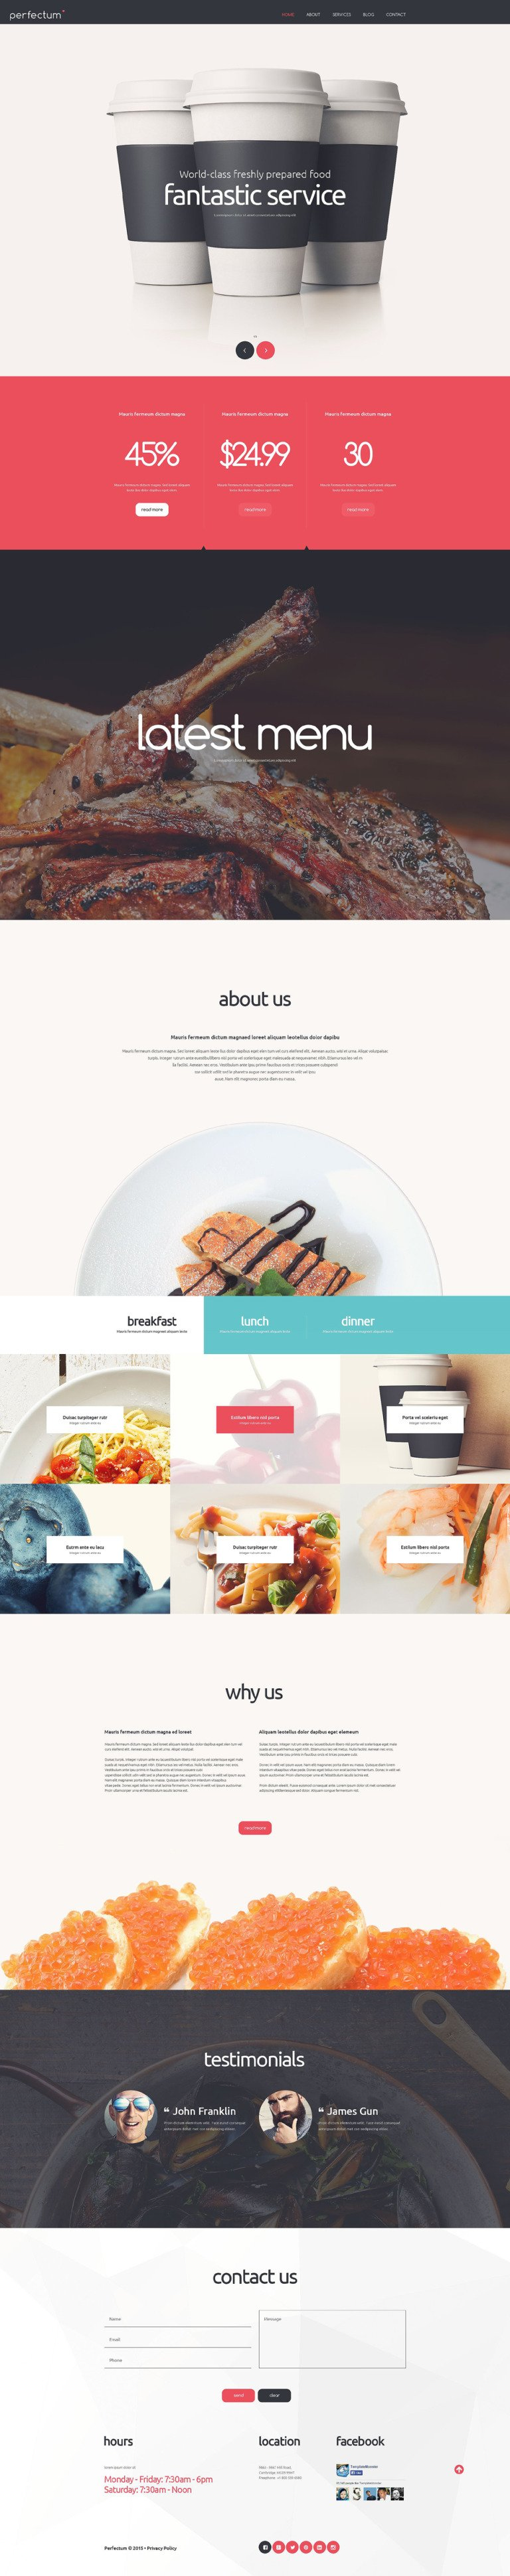 Euporean Restaurant Joomla Template New Screenshots BIG